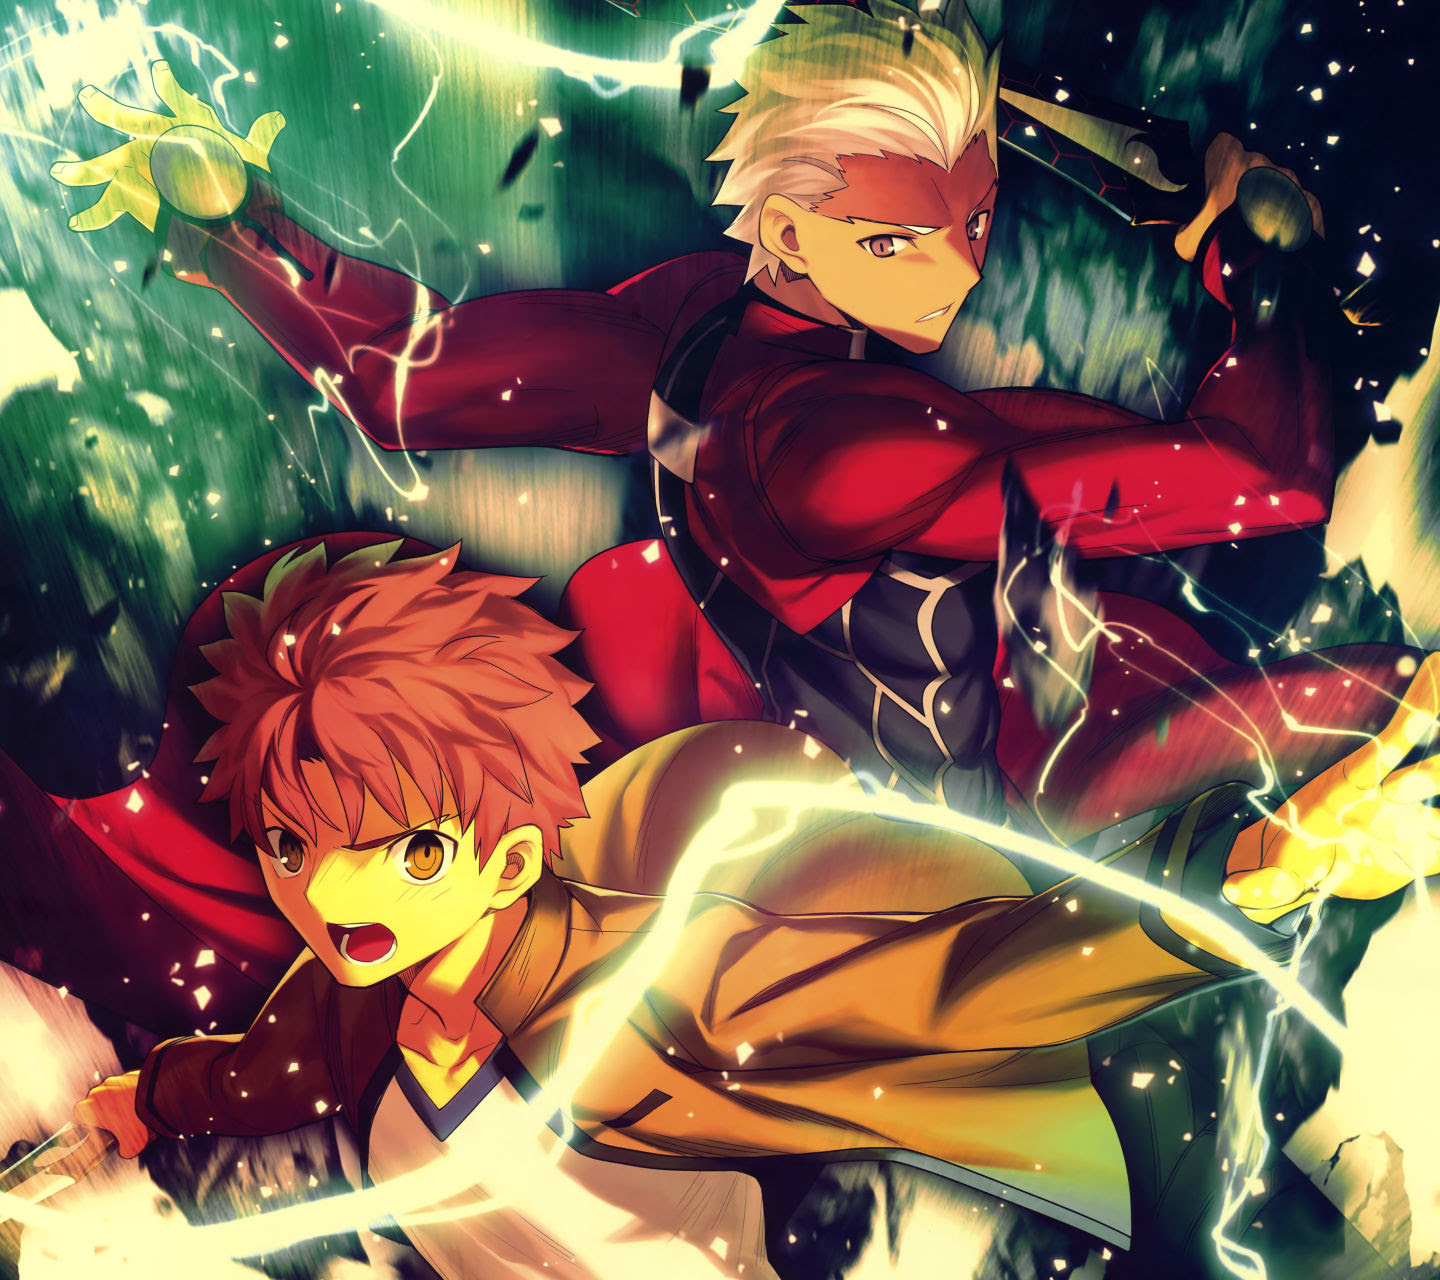 Fate Stay Night Android壁紙 画像 2 1440 1280 アニメ壁紙